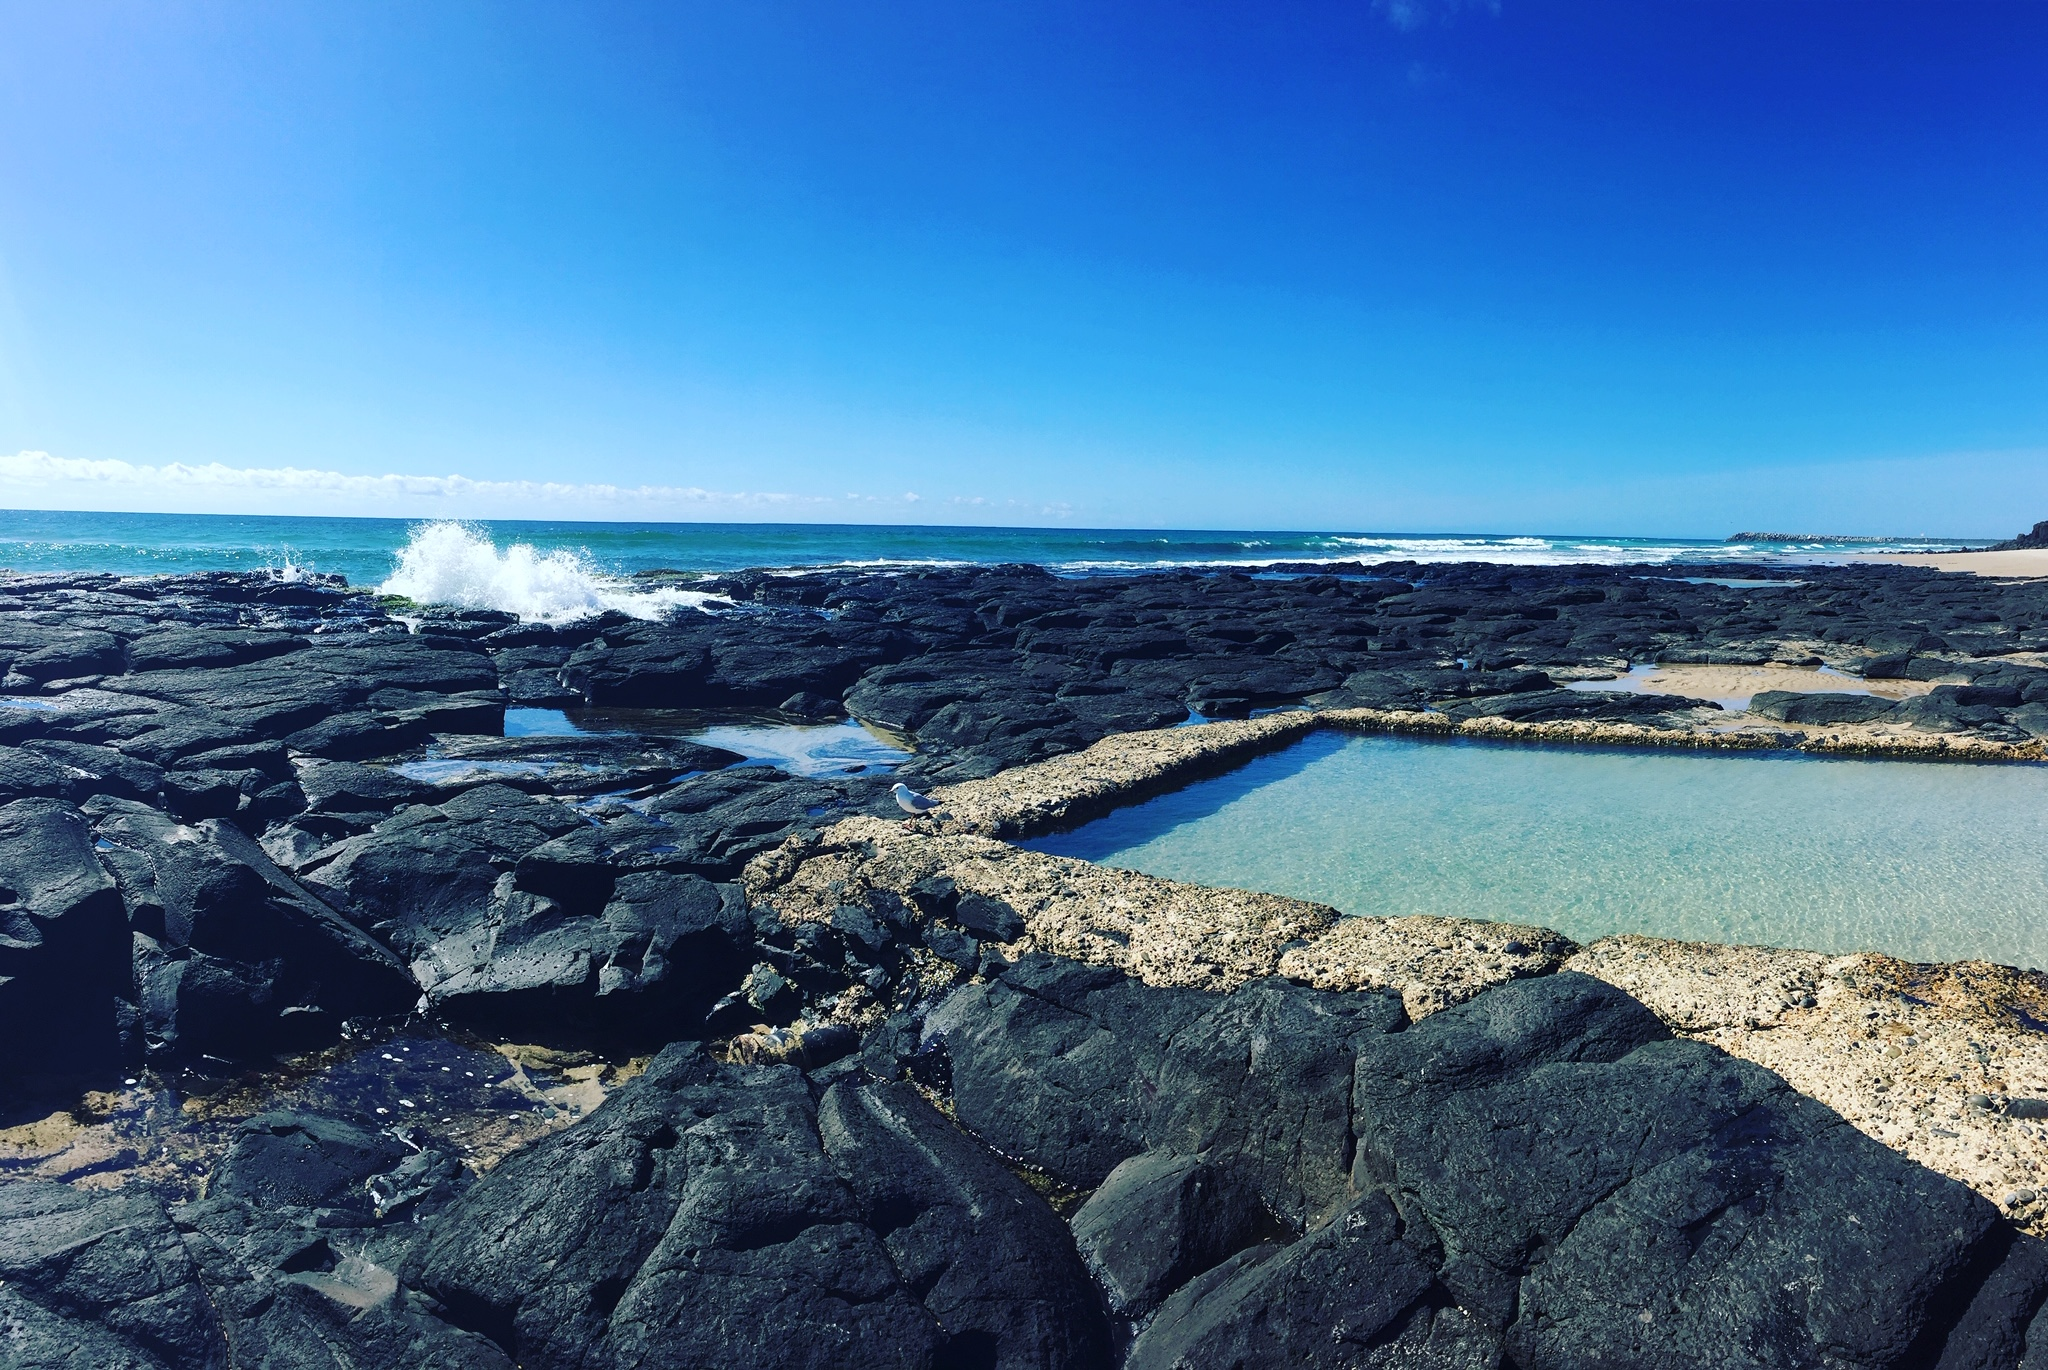 Shelly Rockpools